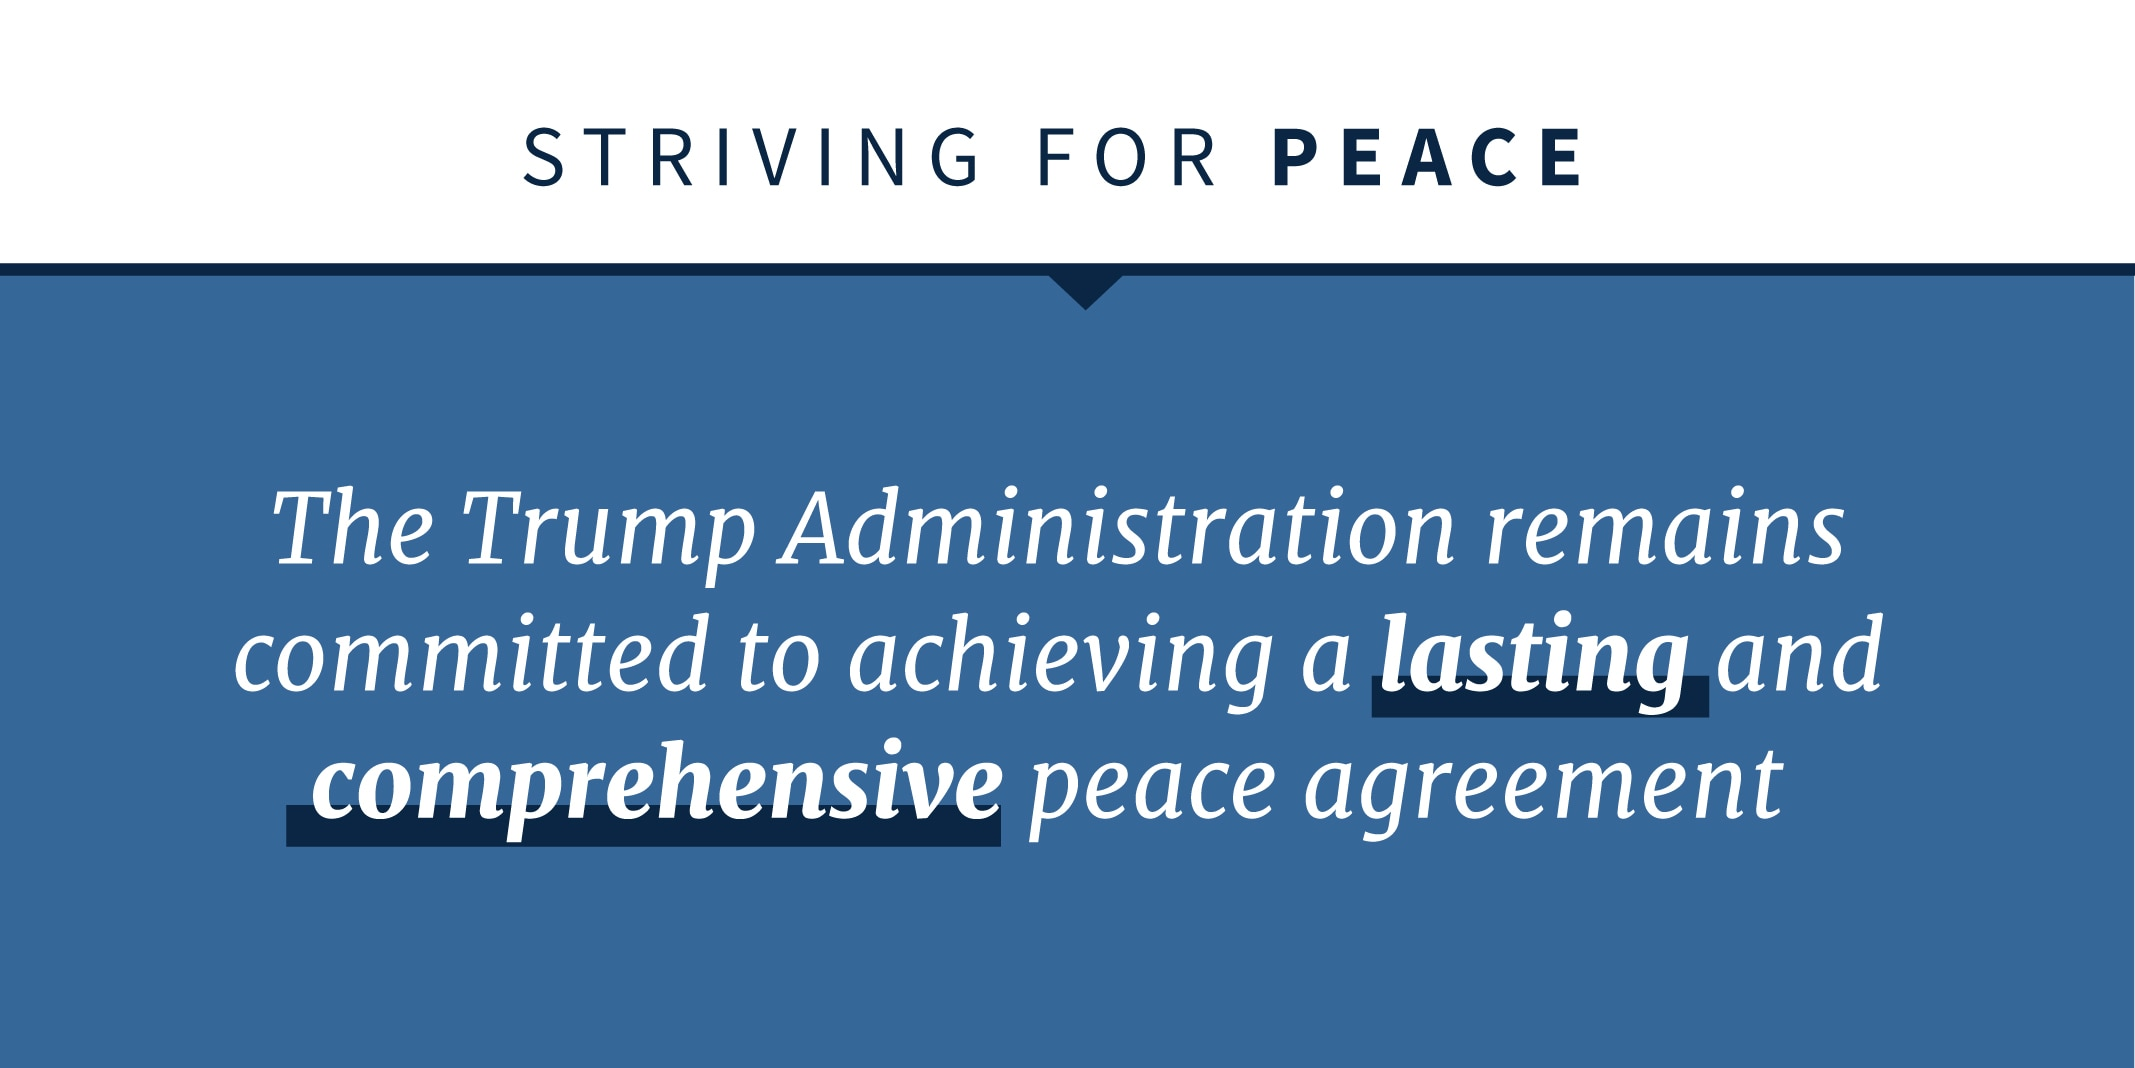 Statement on Trump administration's commitment to peace agreement (State Dept.)